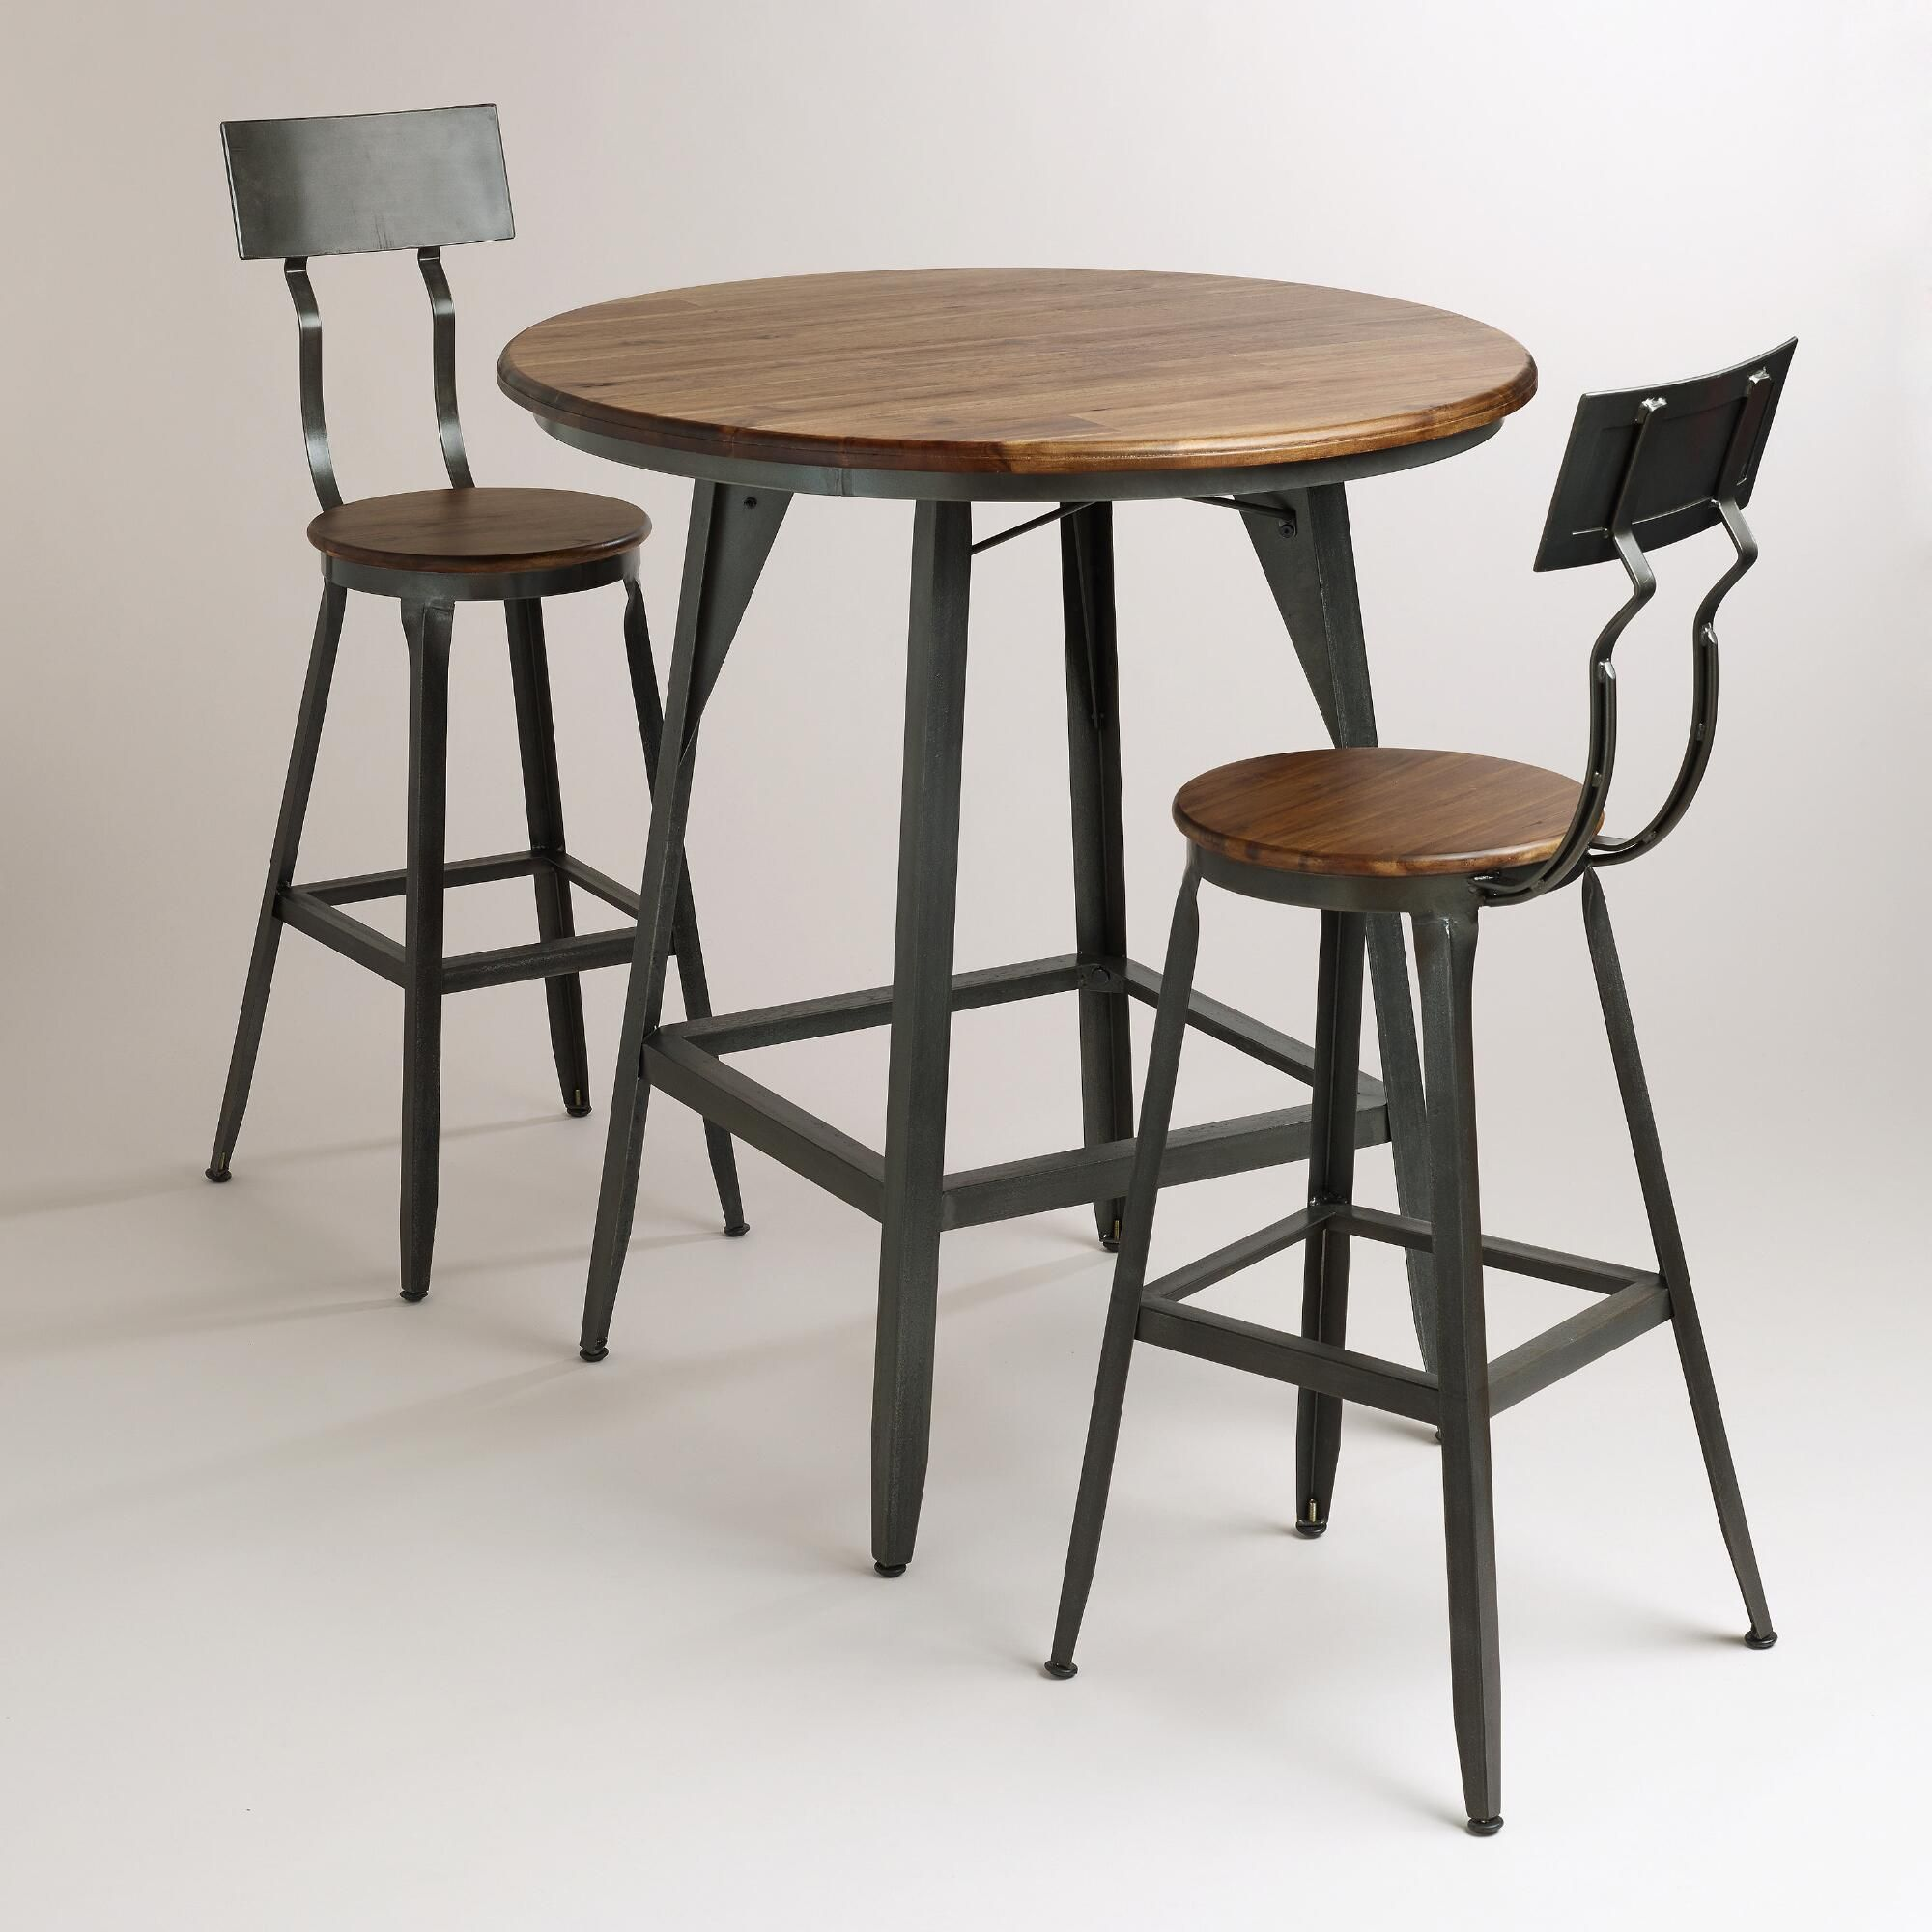 Our Handsome Hudson Pub Table Exudes Big City Style That Recalls The Early  20th